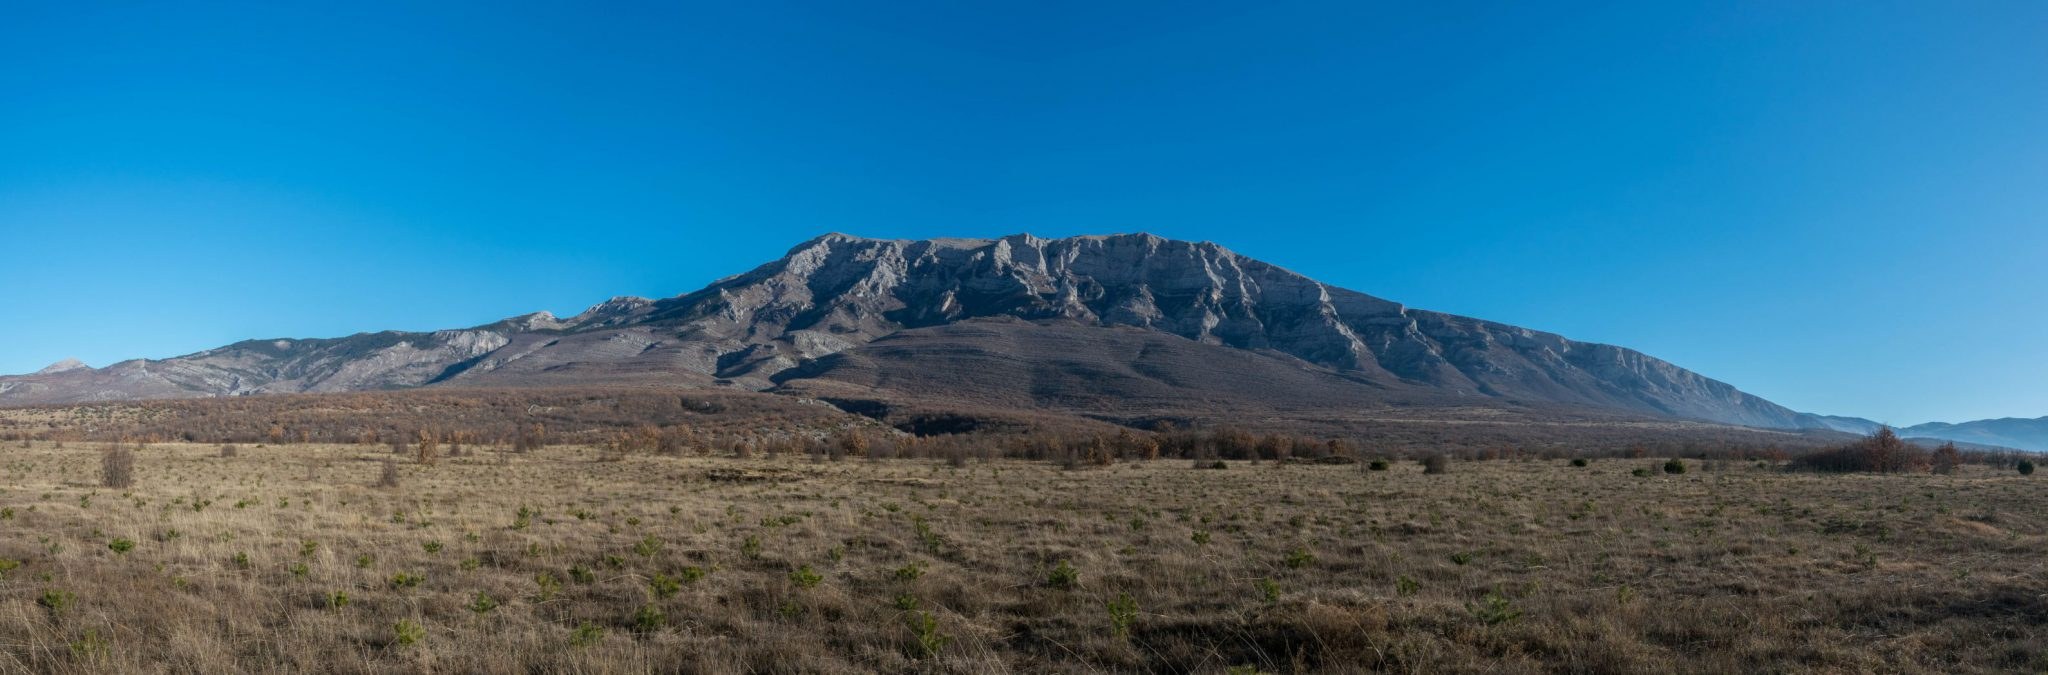 DSC_0667-Pano_compressed